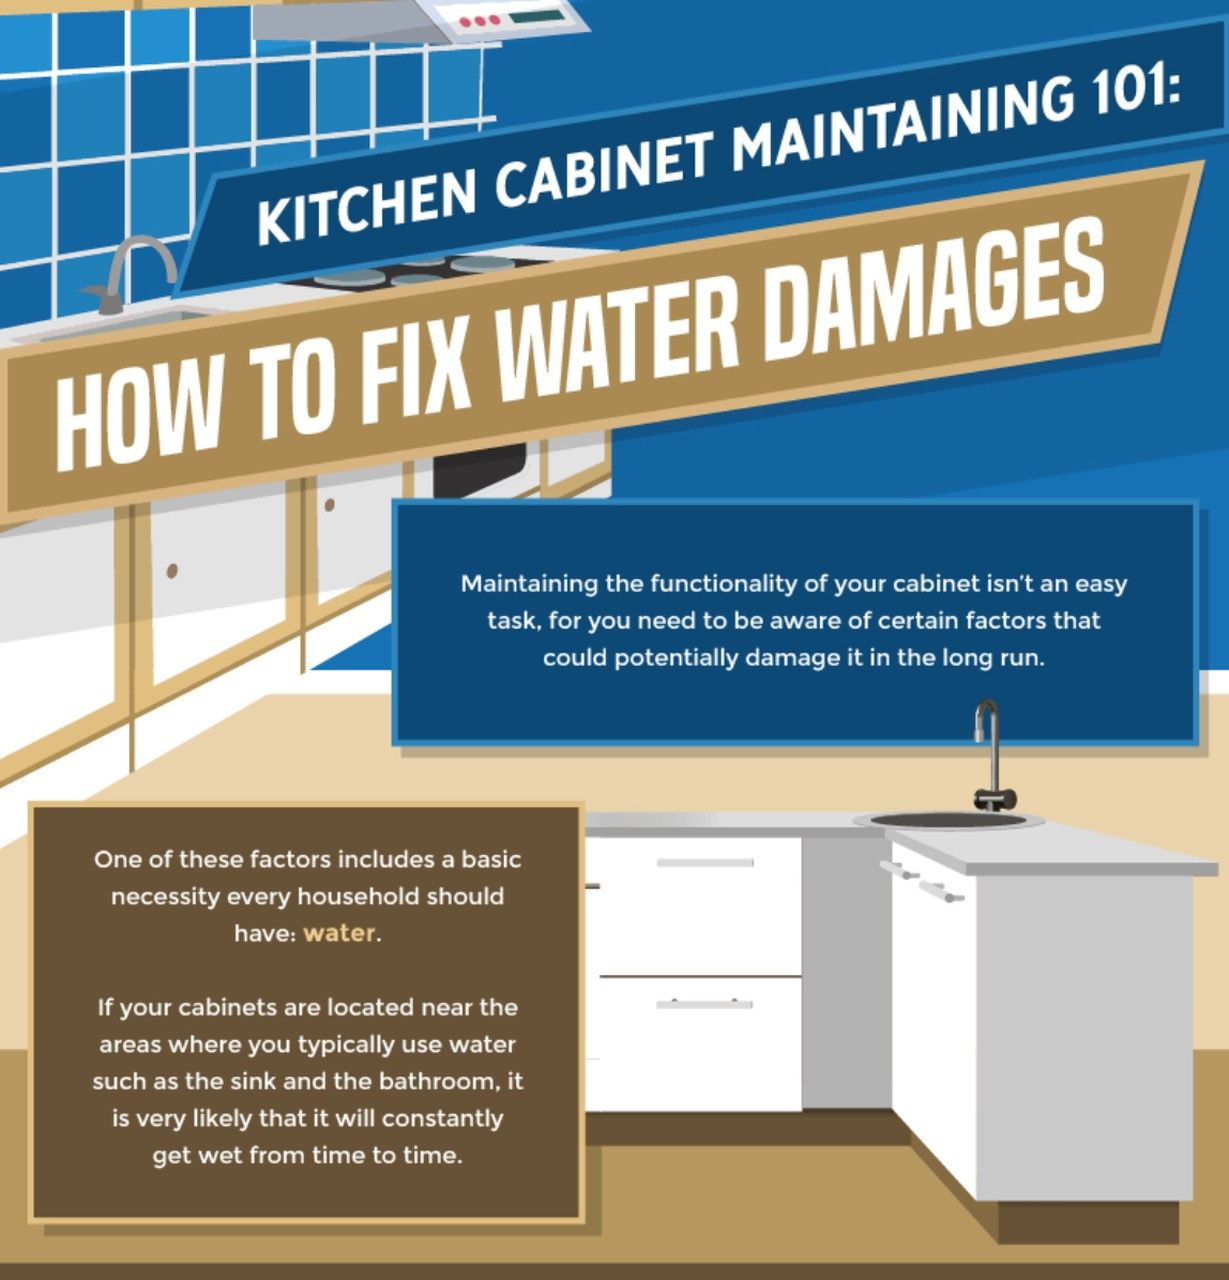 Kitchen Cabinets How To Fix Water Damage How To Run Longer Awareness Need This